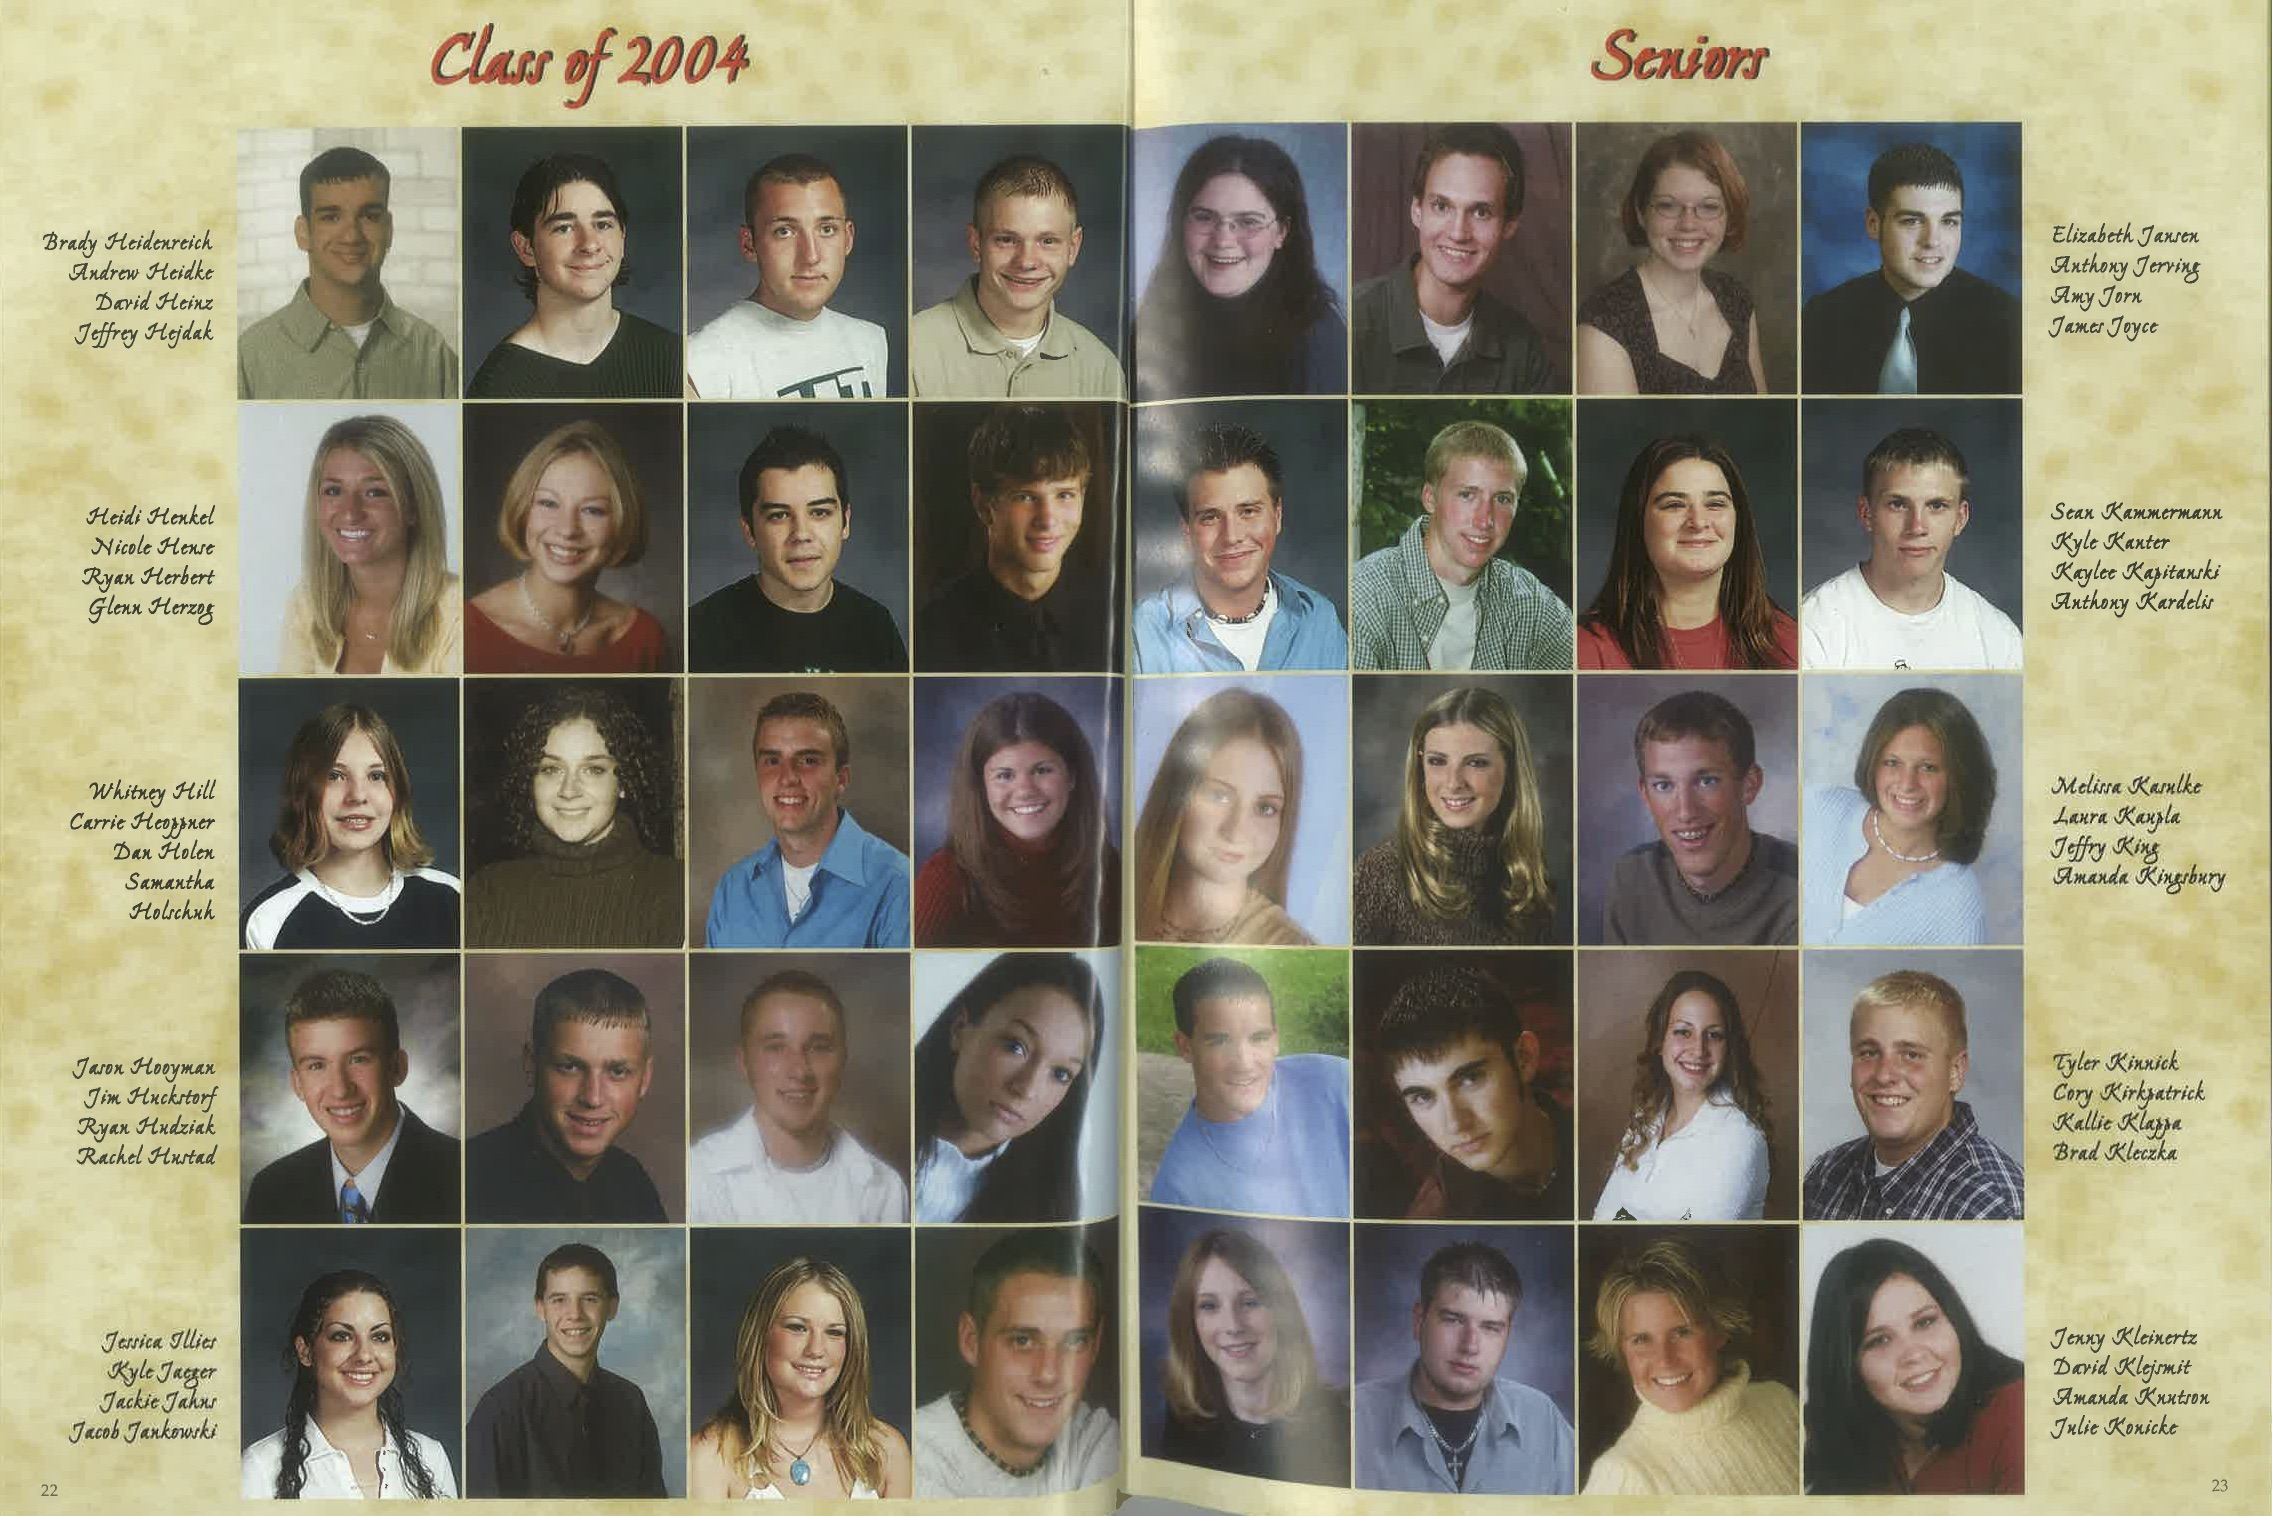 2004_Yearbook_12.jpg